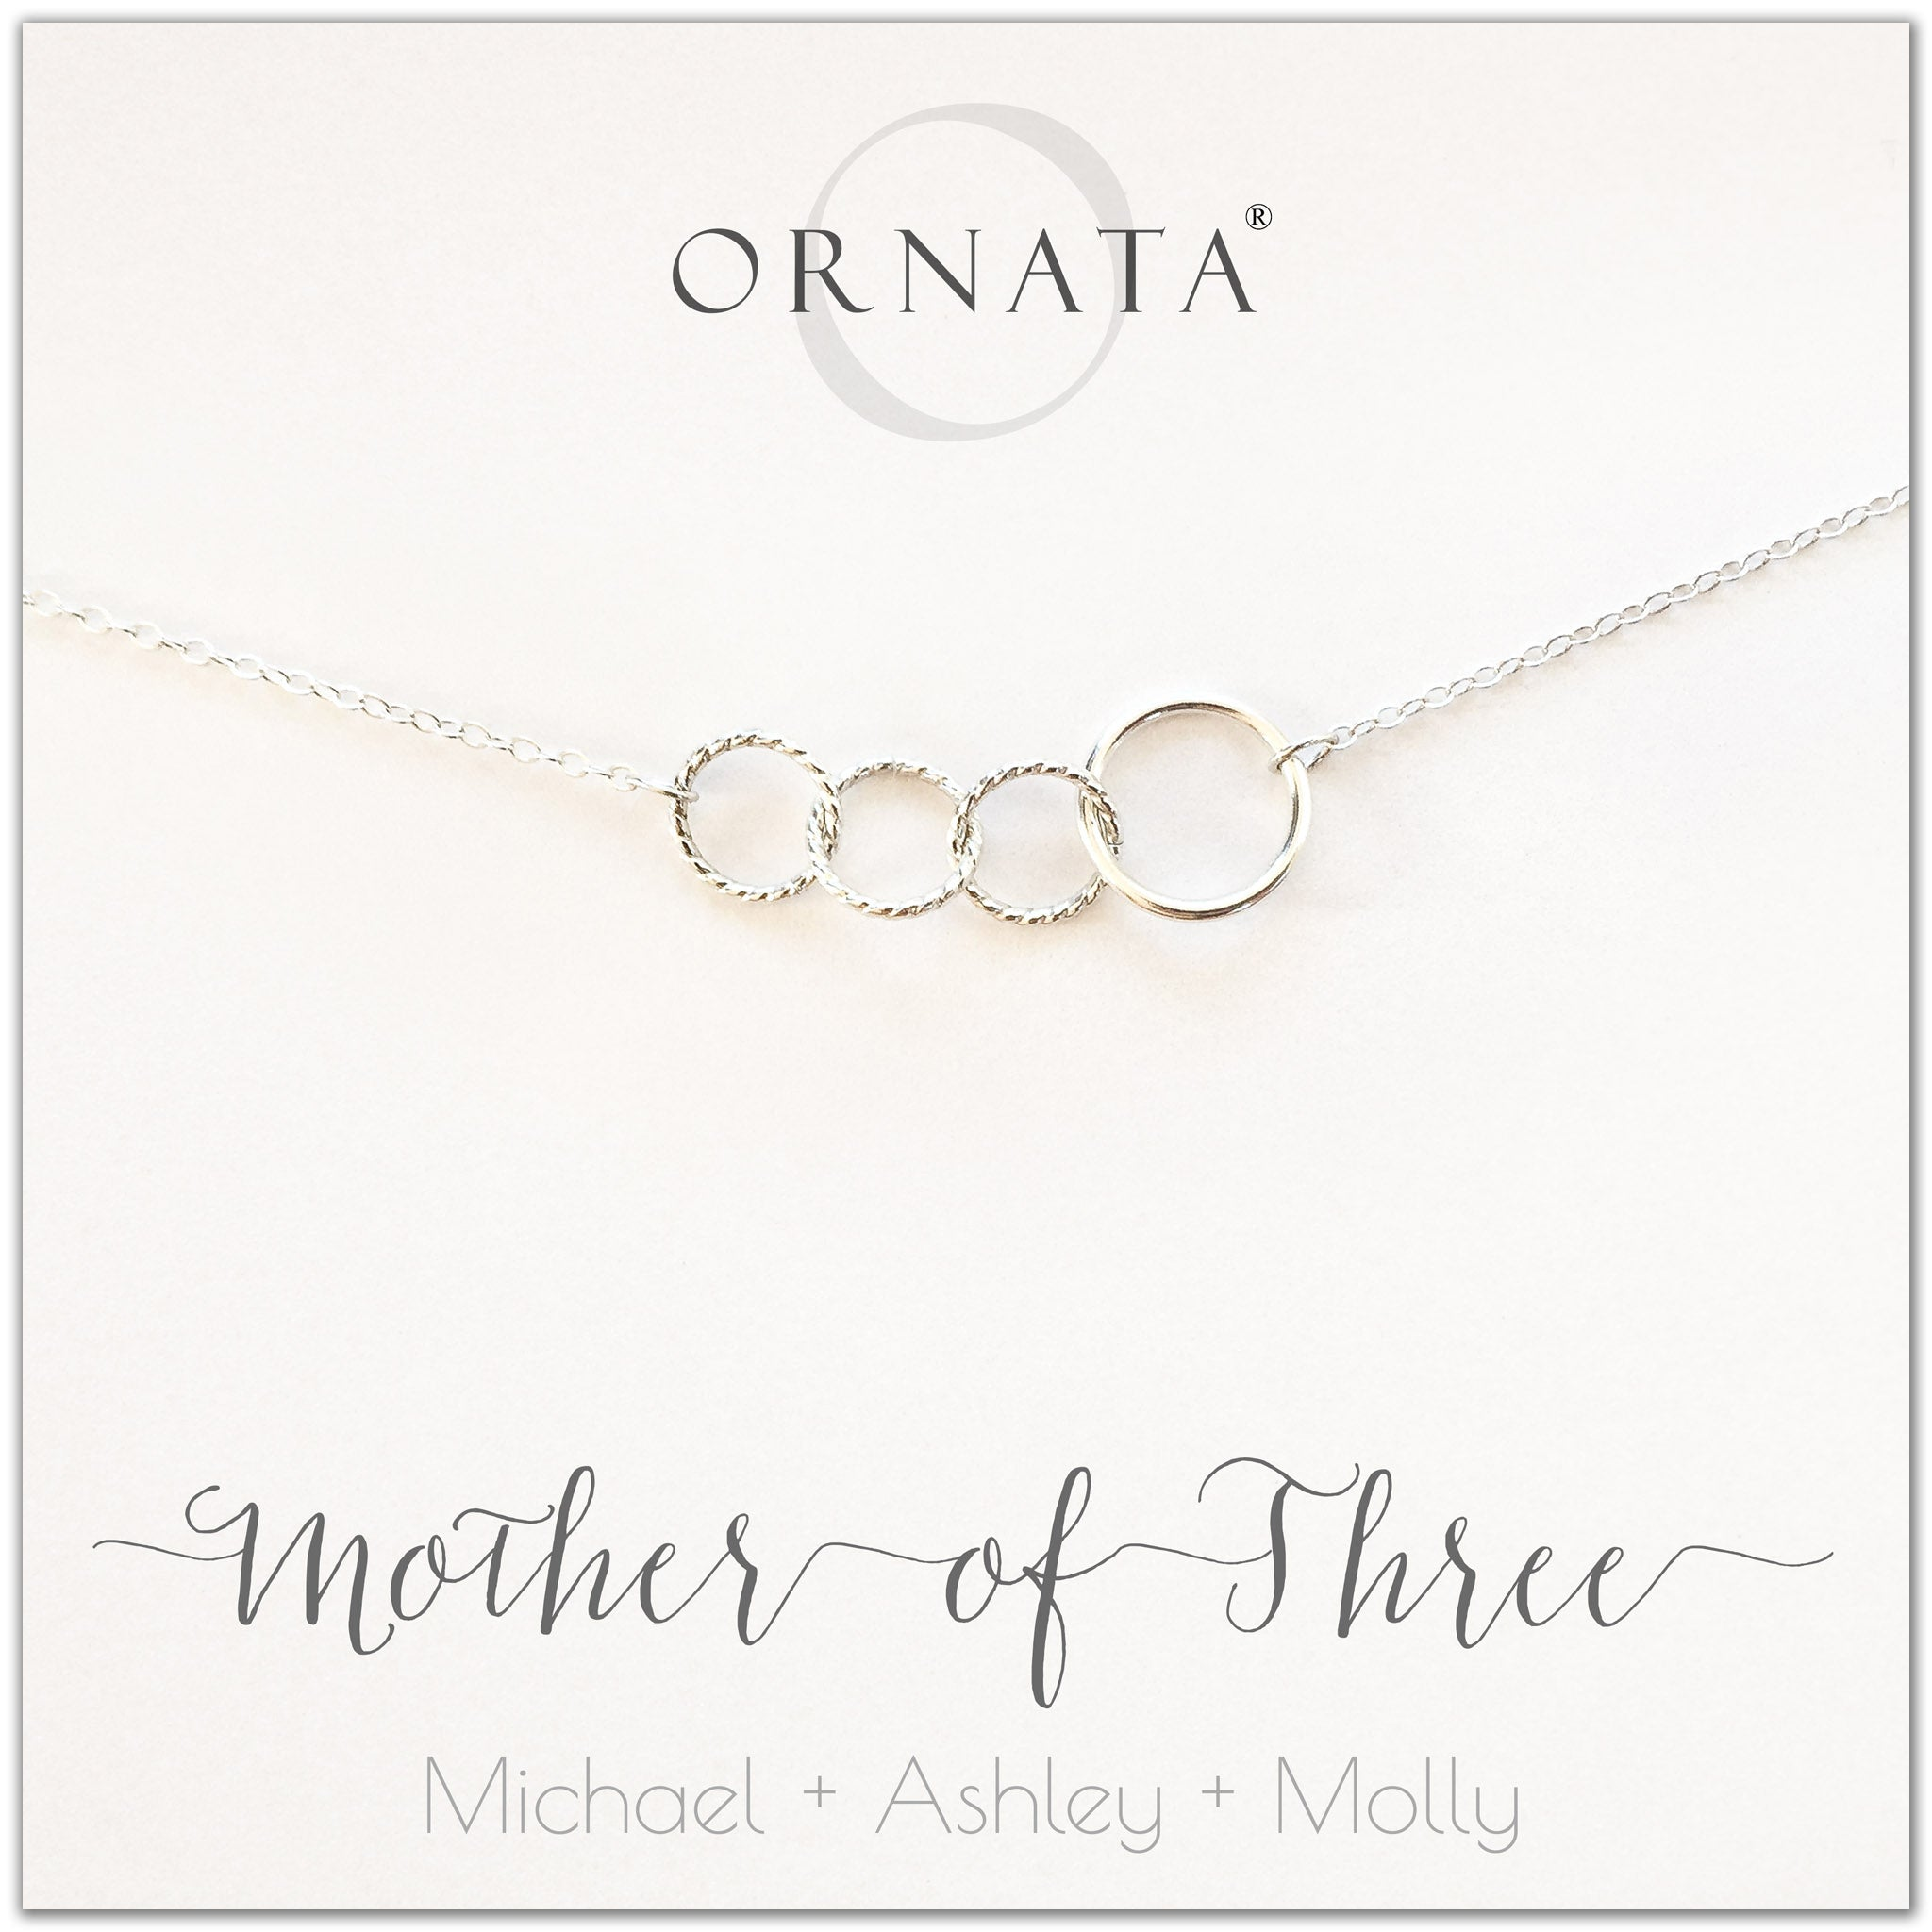 Mom or Mother of Three - personalized silver necklaces. Our sterling silver custom jewelry is a perfect gift for mothers of three children, wives, or family members. Also a good gift for Mother's Day. Delicate sterling silver interlocking rings represent a mother and her three children.